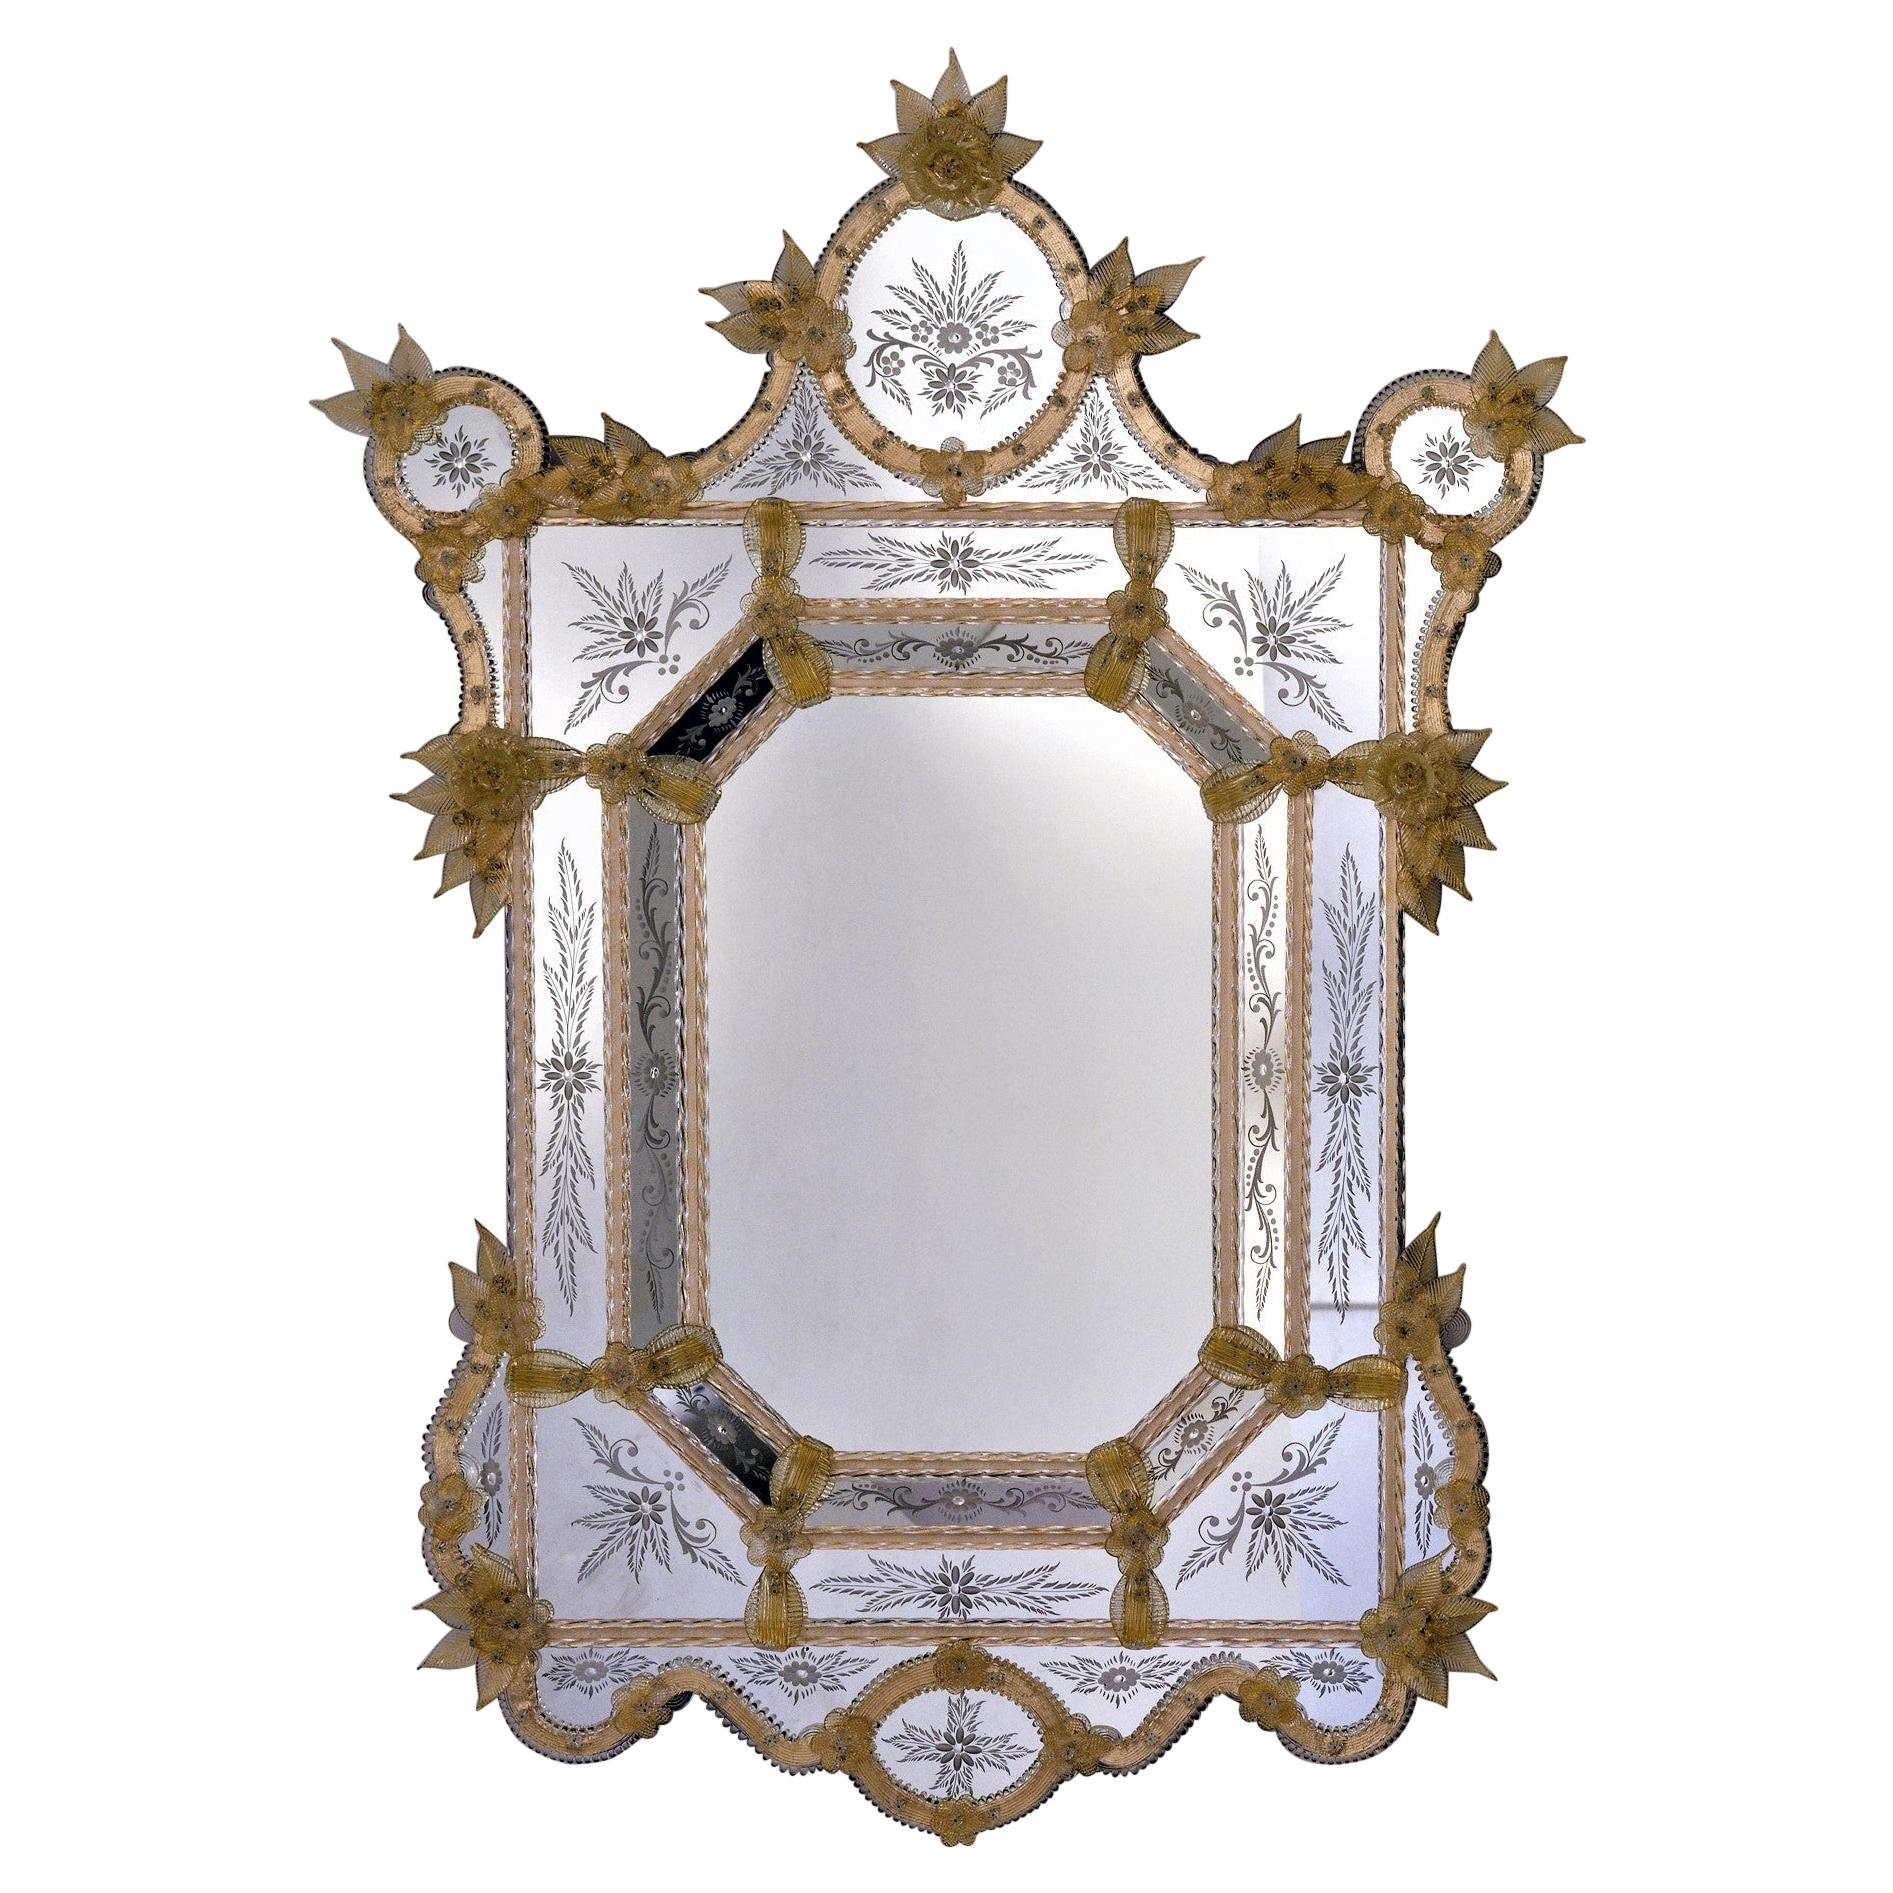 Tintoretto, Murano Glass Mirror in Venetian Style by Fratelli Tosi Made in Italy